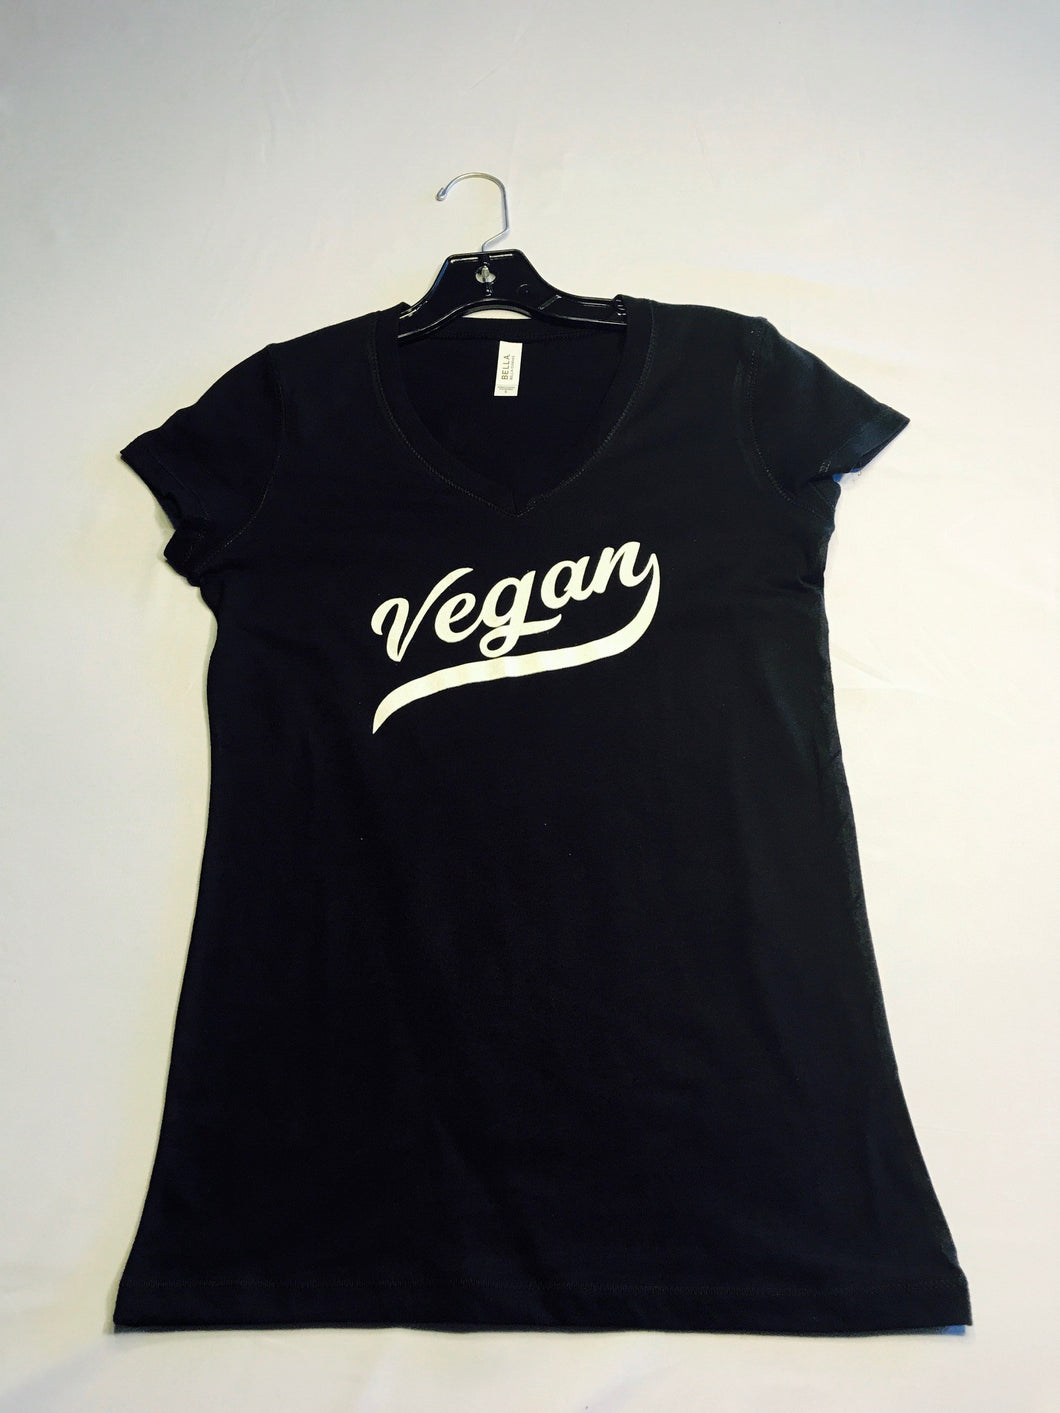 Vegan Retro Womans V-Neck Tee